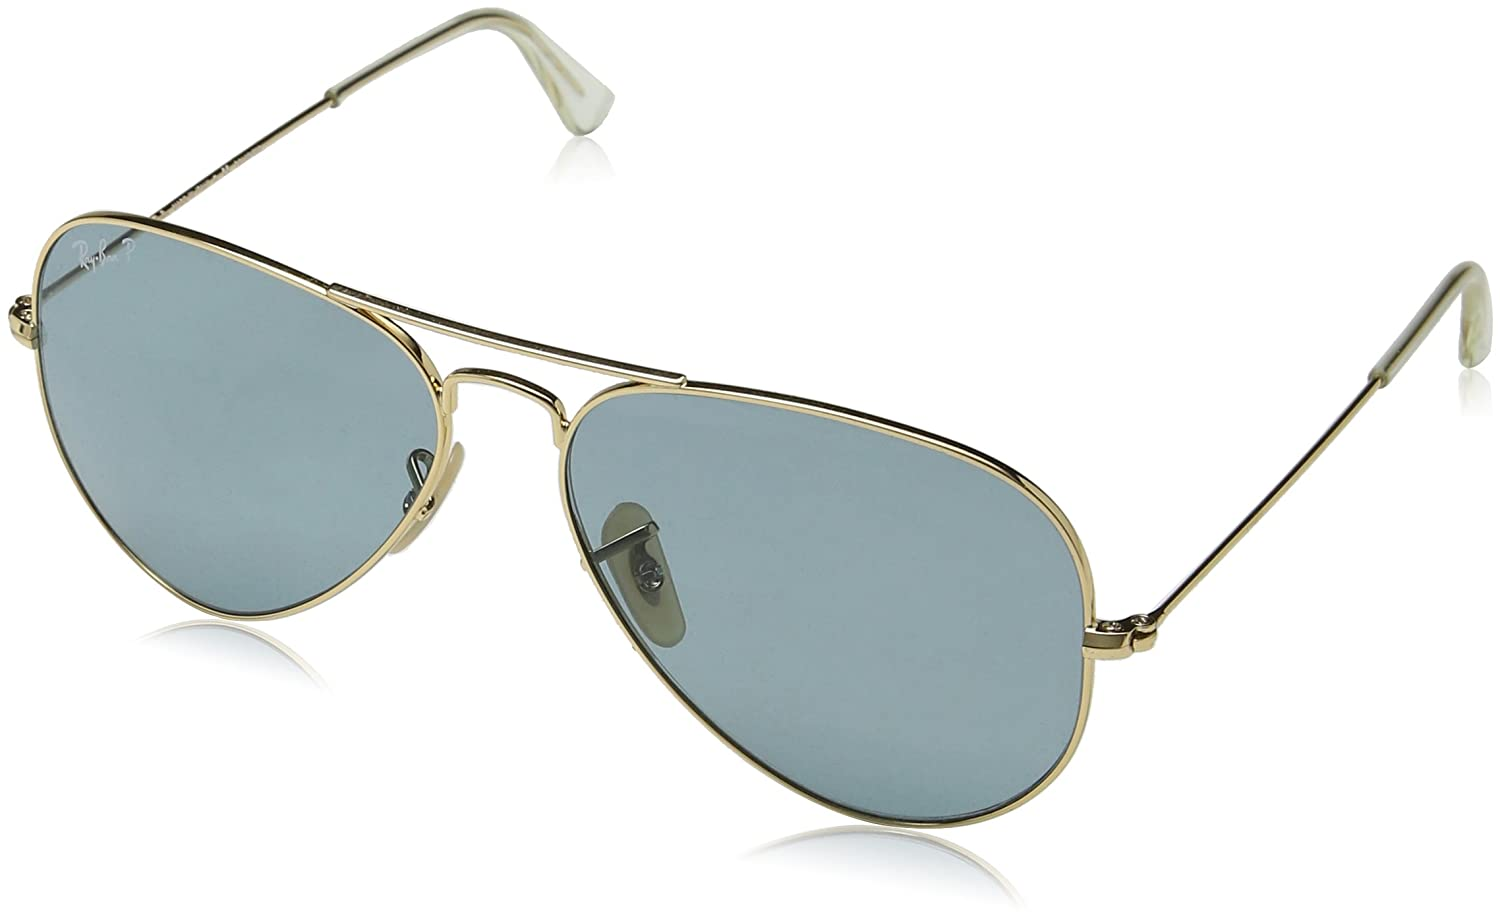 cdd896211a Amazon.com  Ray-Ban AVIATOR LARGE METAL - GOLD Frame CRYSTAL POLAR SKY BLUE  Lenses 58mm Polarized  Ray-Ban  Clothing